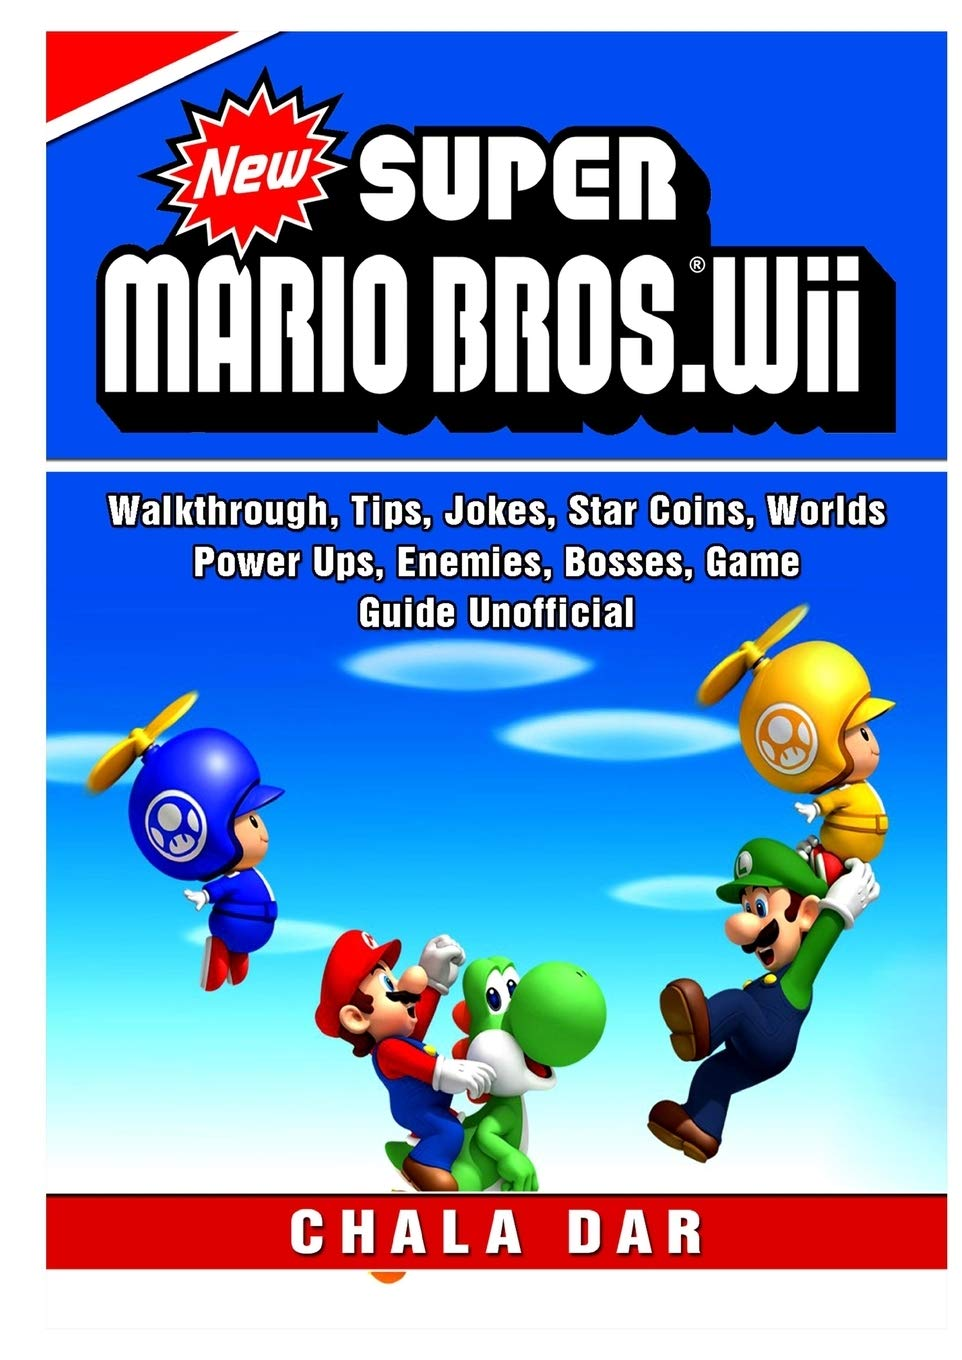 New Super Mario Bros Wii, Walkthrough, Tips, Jokes, Star Coins, Worlds, Power Ups, Enemies, Bosses, Game Guide Unofficial: Amazon.es: Dar, Chala: Libros en idiomas extranjeros